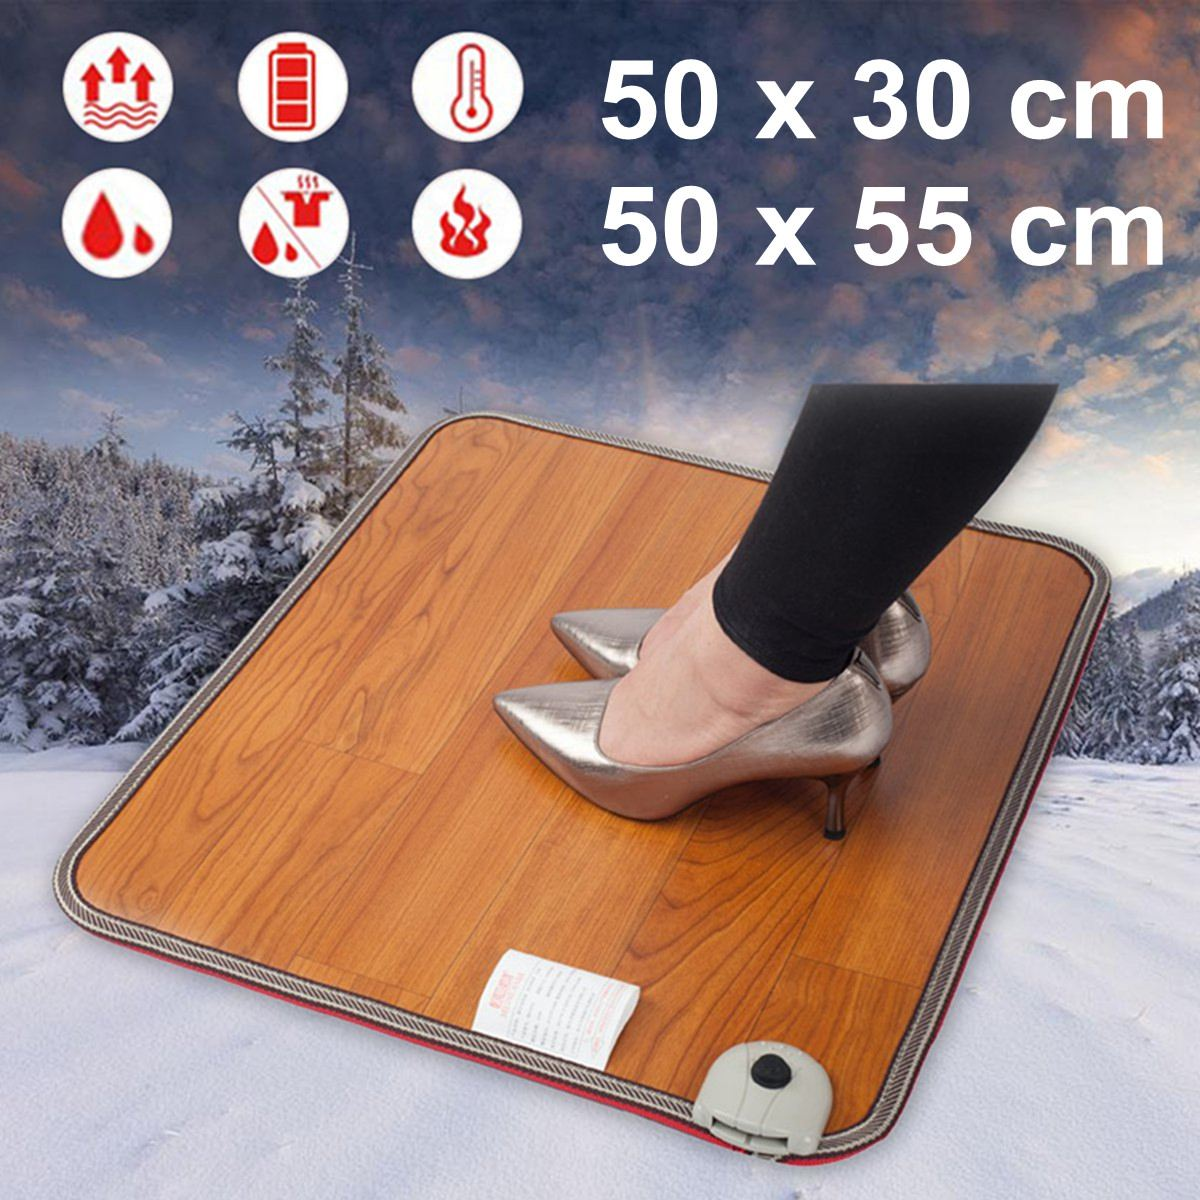 2 Sizes Office Heating Foot Mat Warmer Leather Electric Heating Pad Warm Feet Thermostat Carpet Household Warming Tools 50W 220V